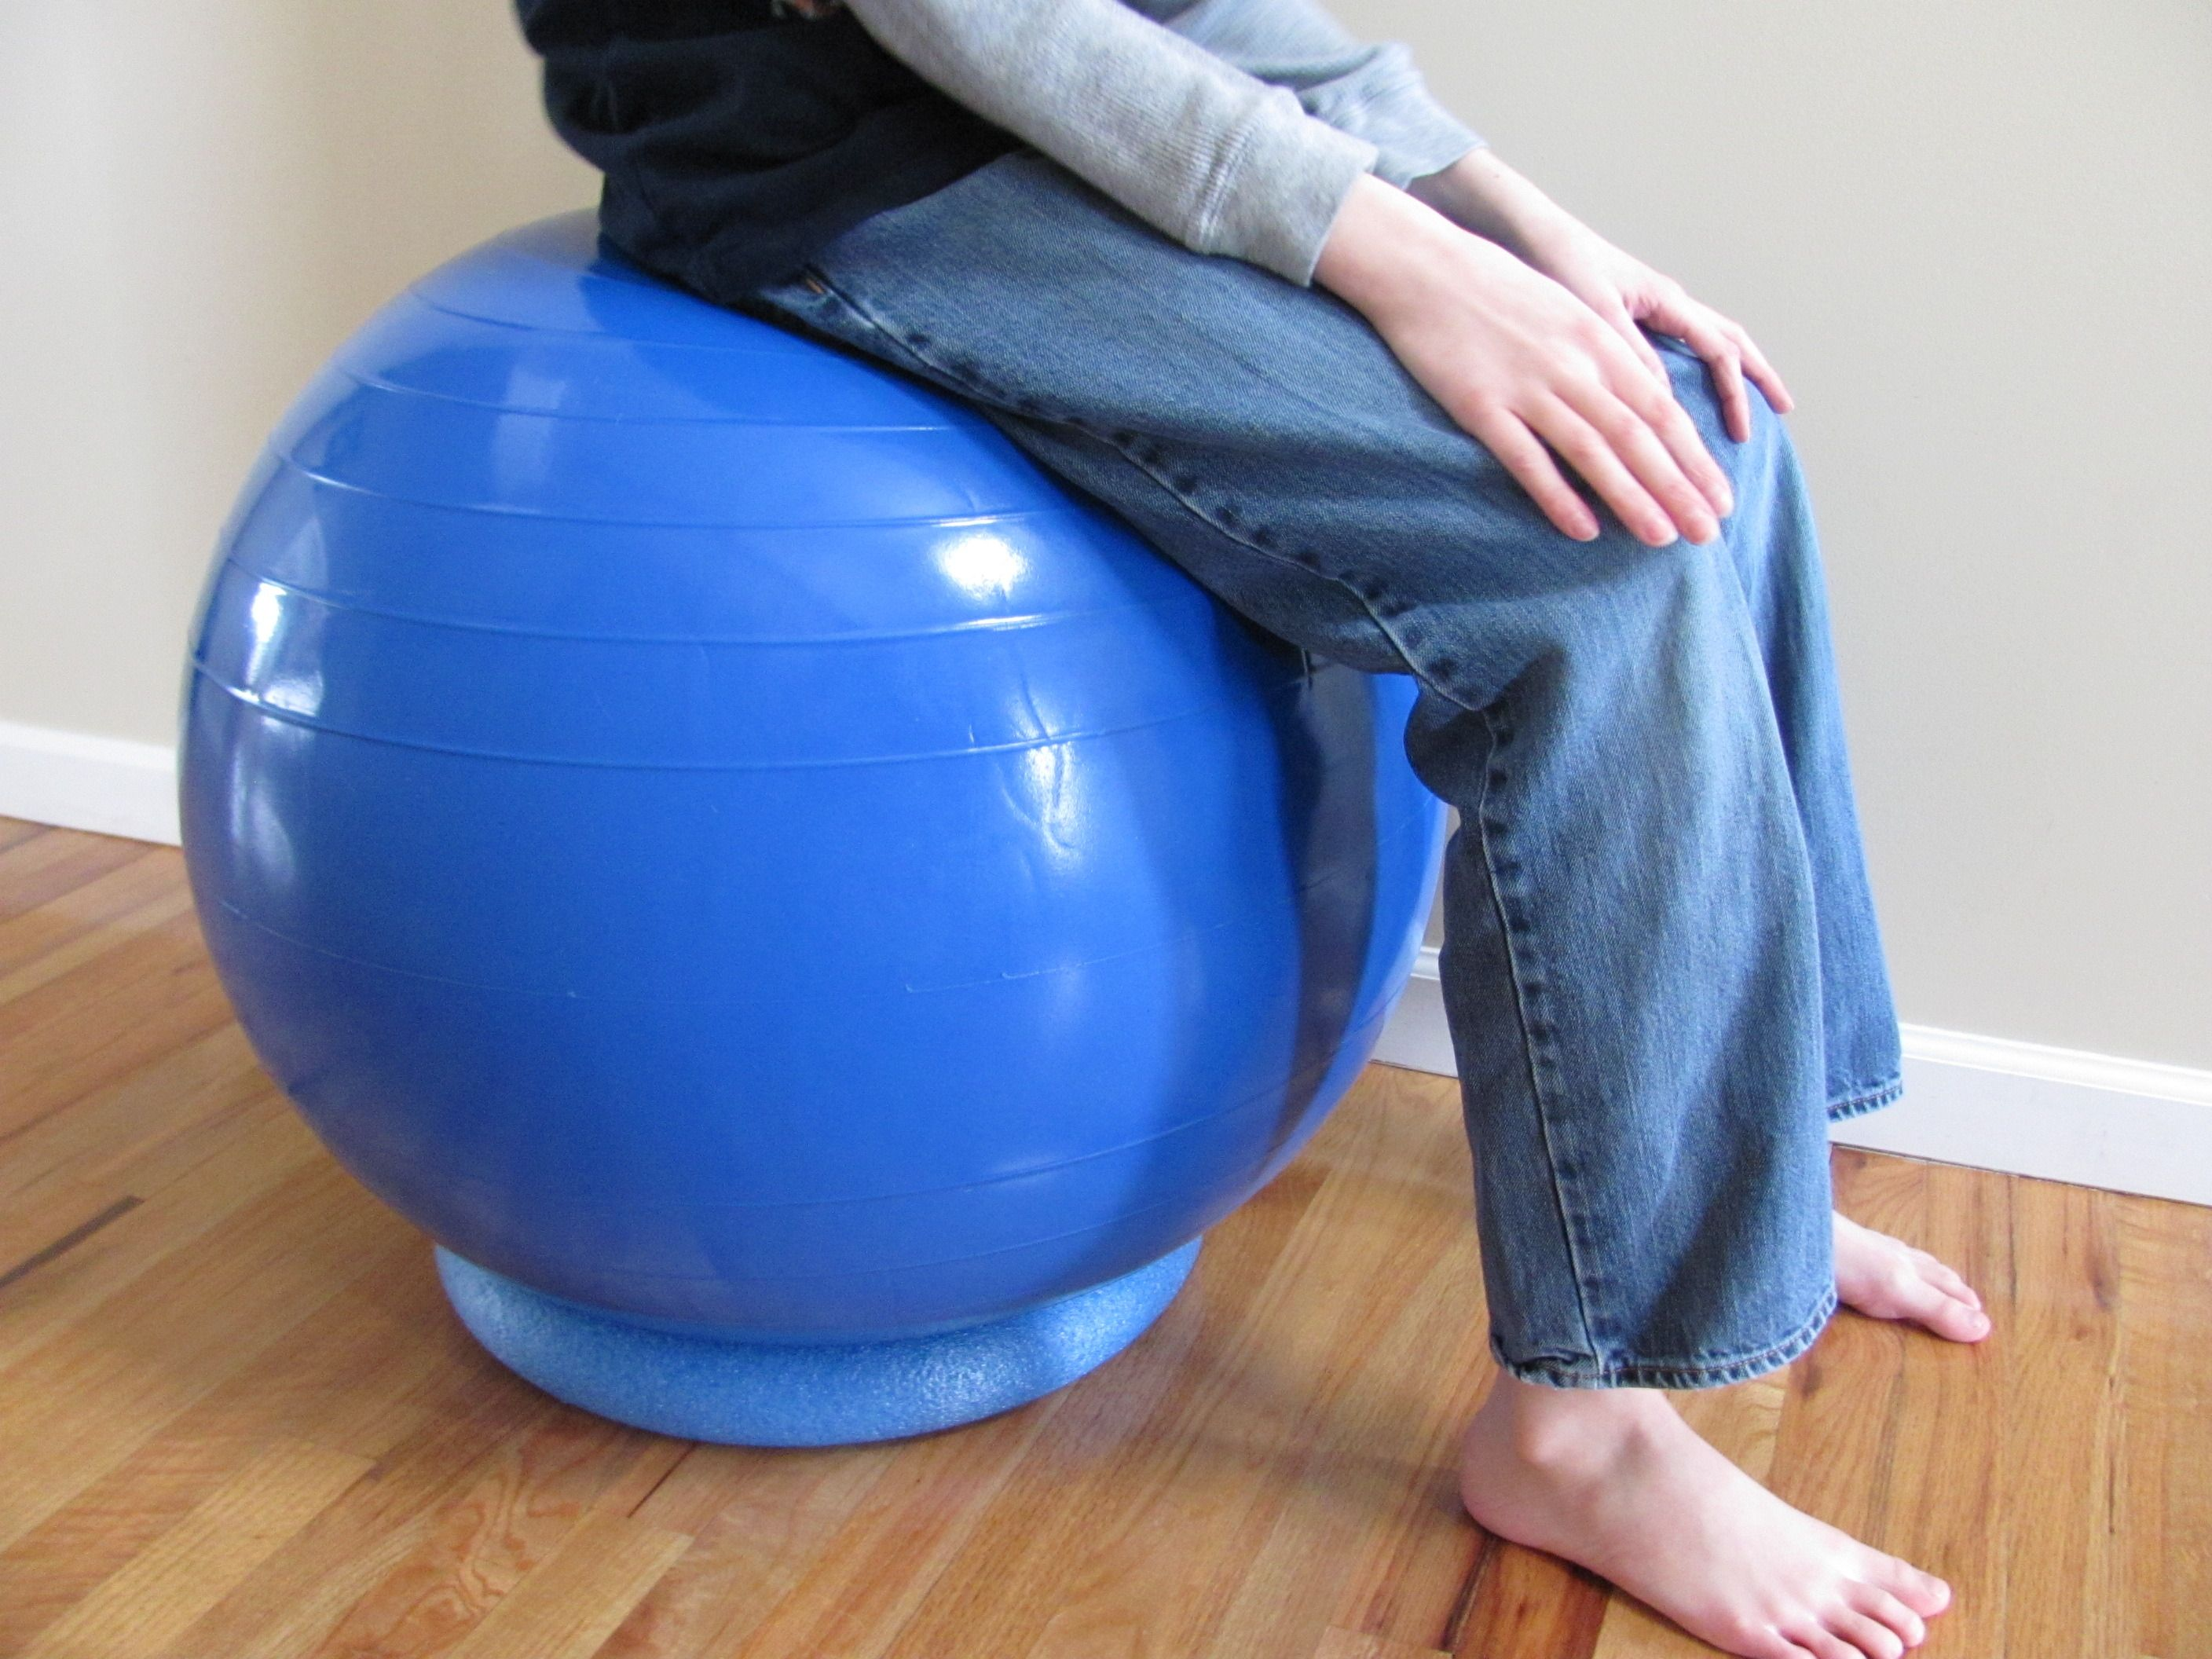 Diy Org Online Courses And Fun Projects For Kids Ball Exercises Pool Noodles Exercise Ball Chairs